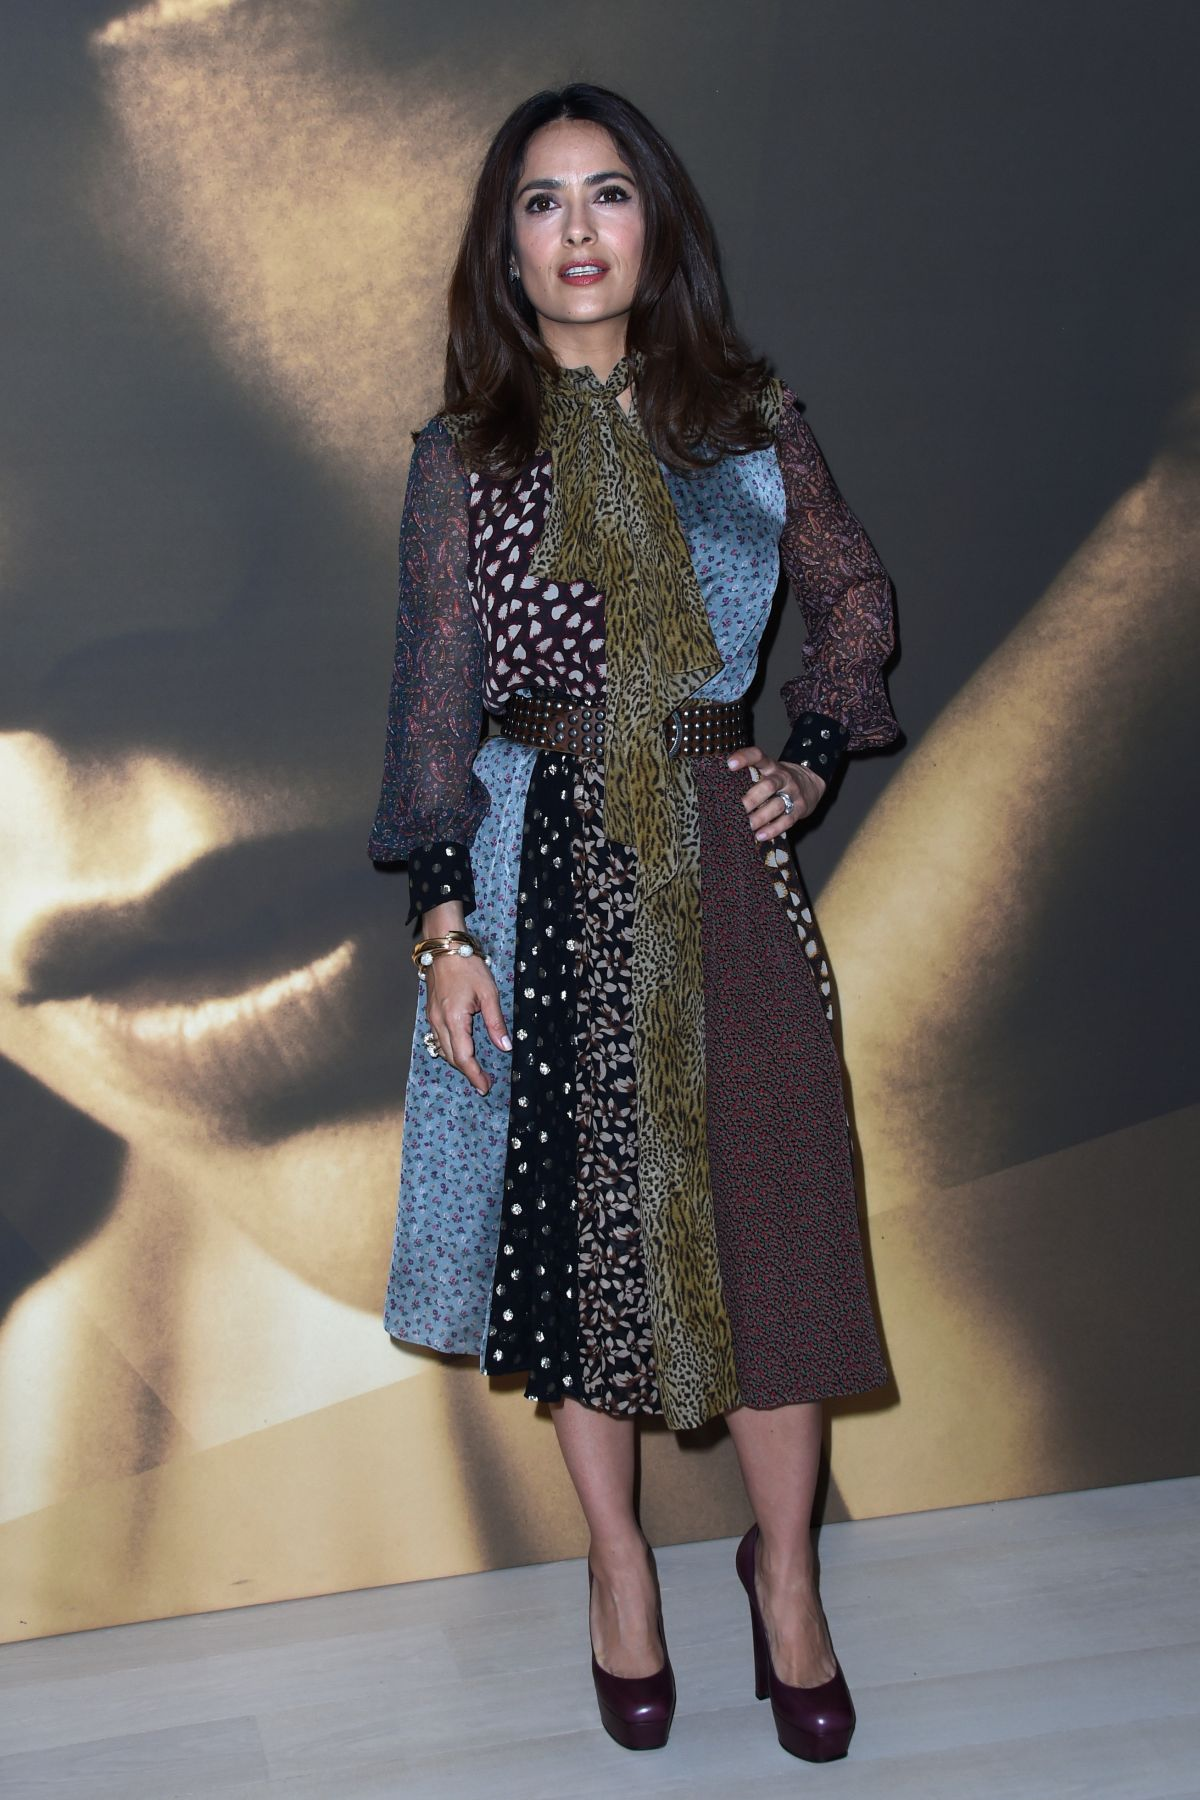 salma-hayek-at-kering-women-in-motion-initiatives-talk-at-majestic-hotel-in-cannes_3